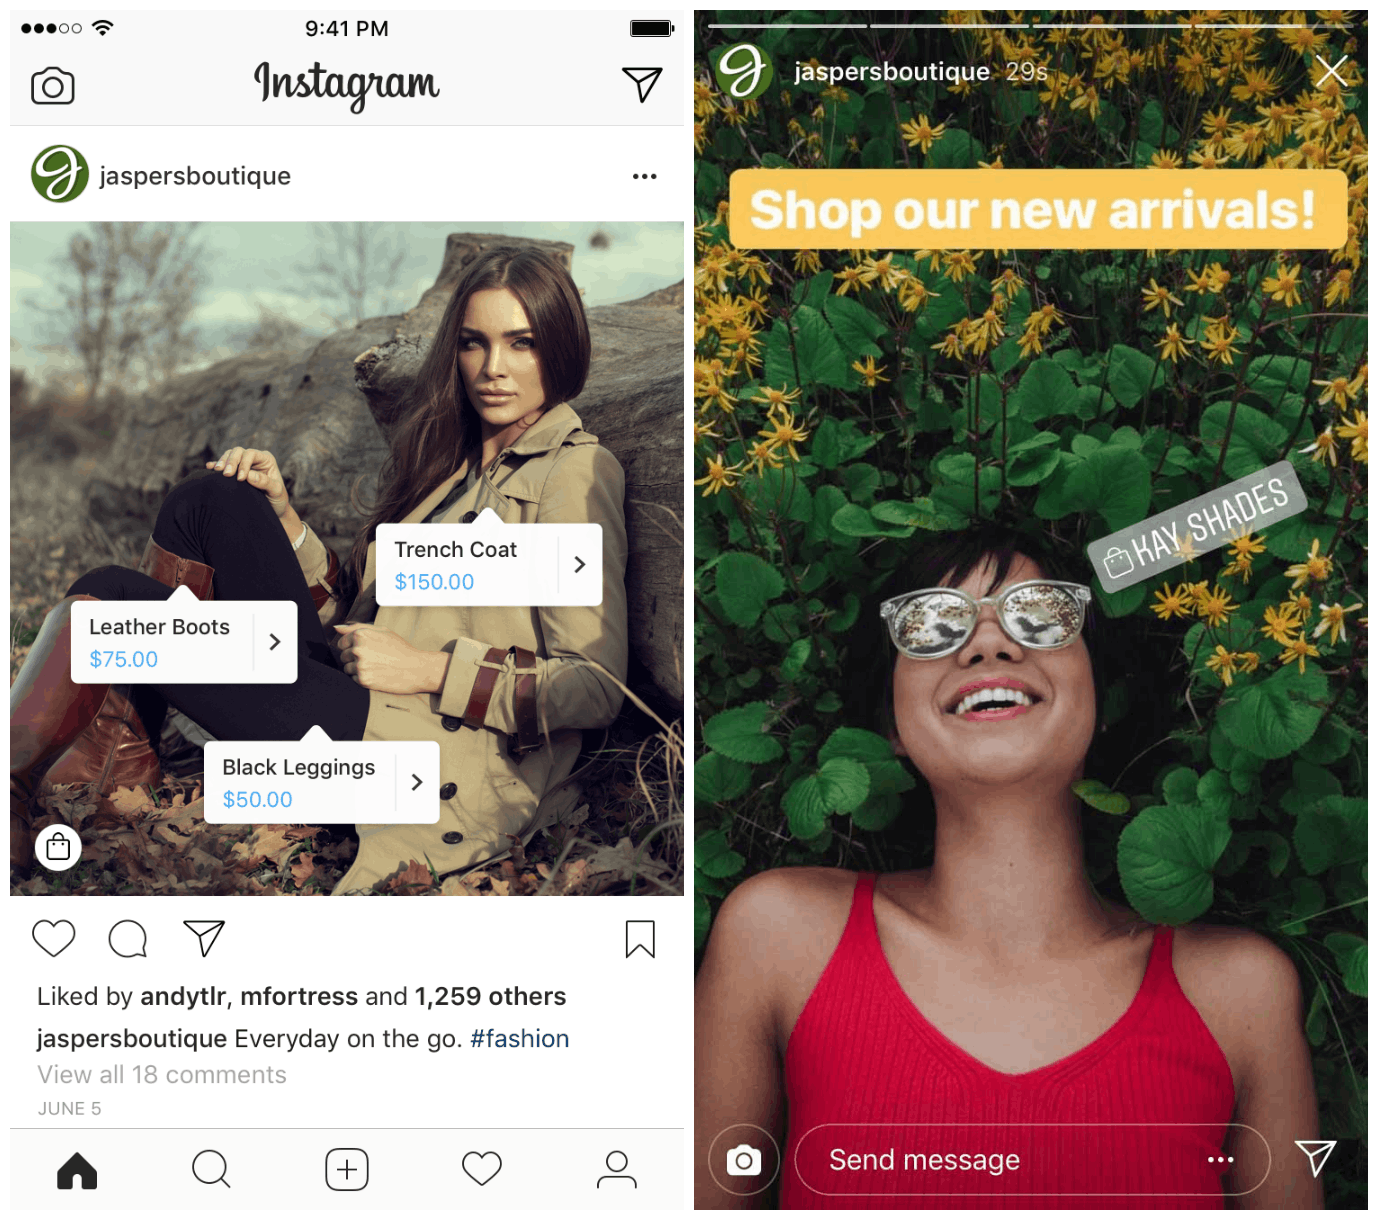 L to R: Shoppable tags are added in the form of product tags on image posts and stickers on IG Stories